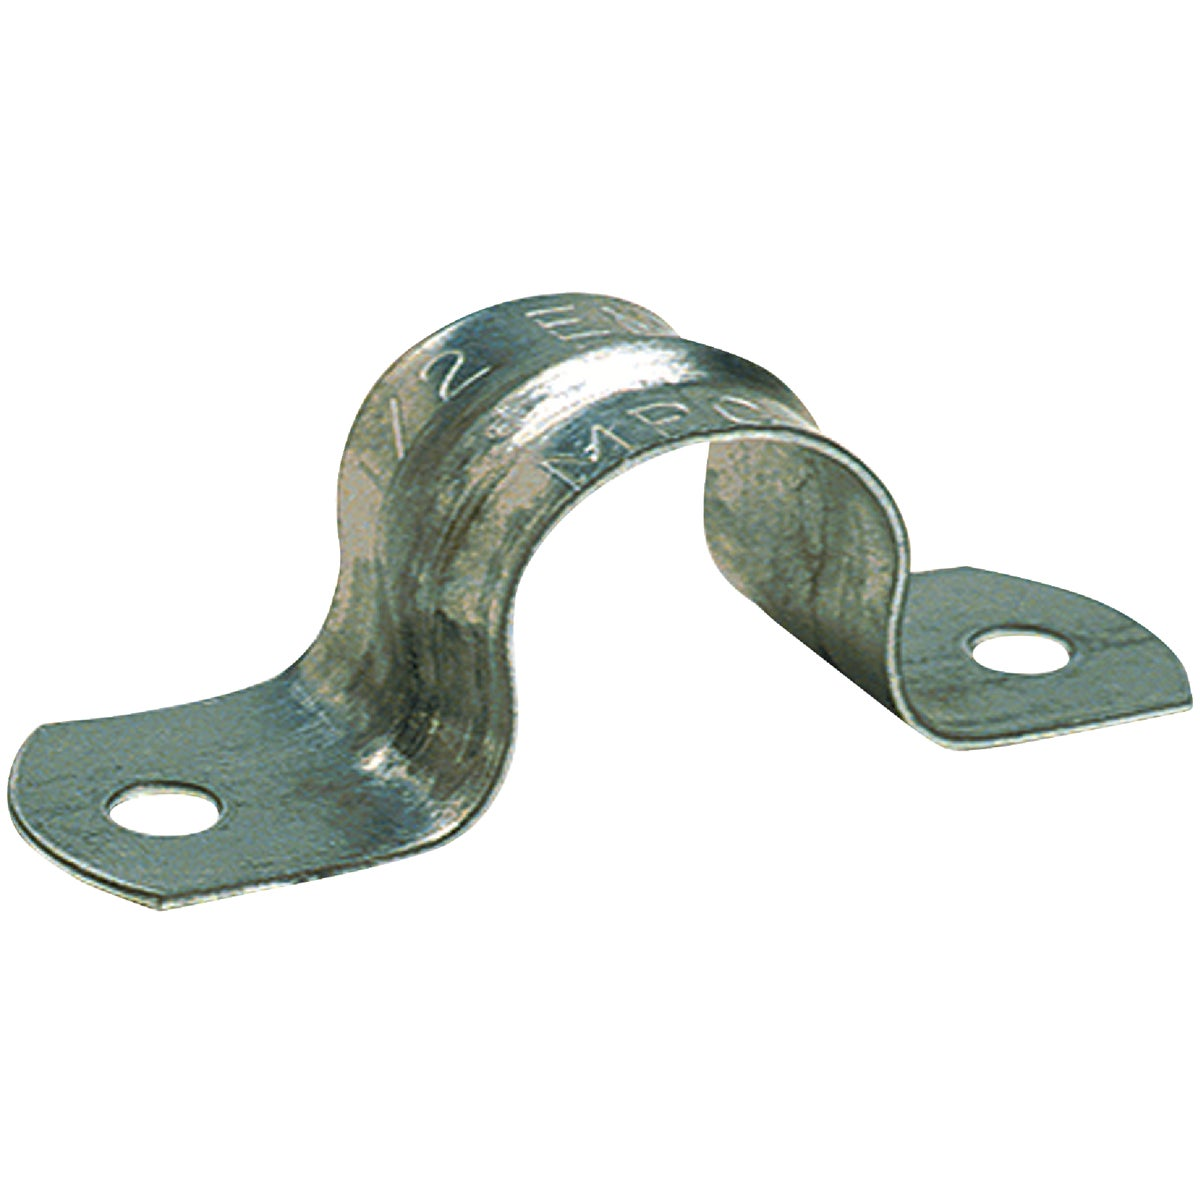 "100 PK 1/2"" 2-HOLE STRAP - TS901100CP by Thomas & Betts"